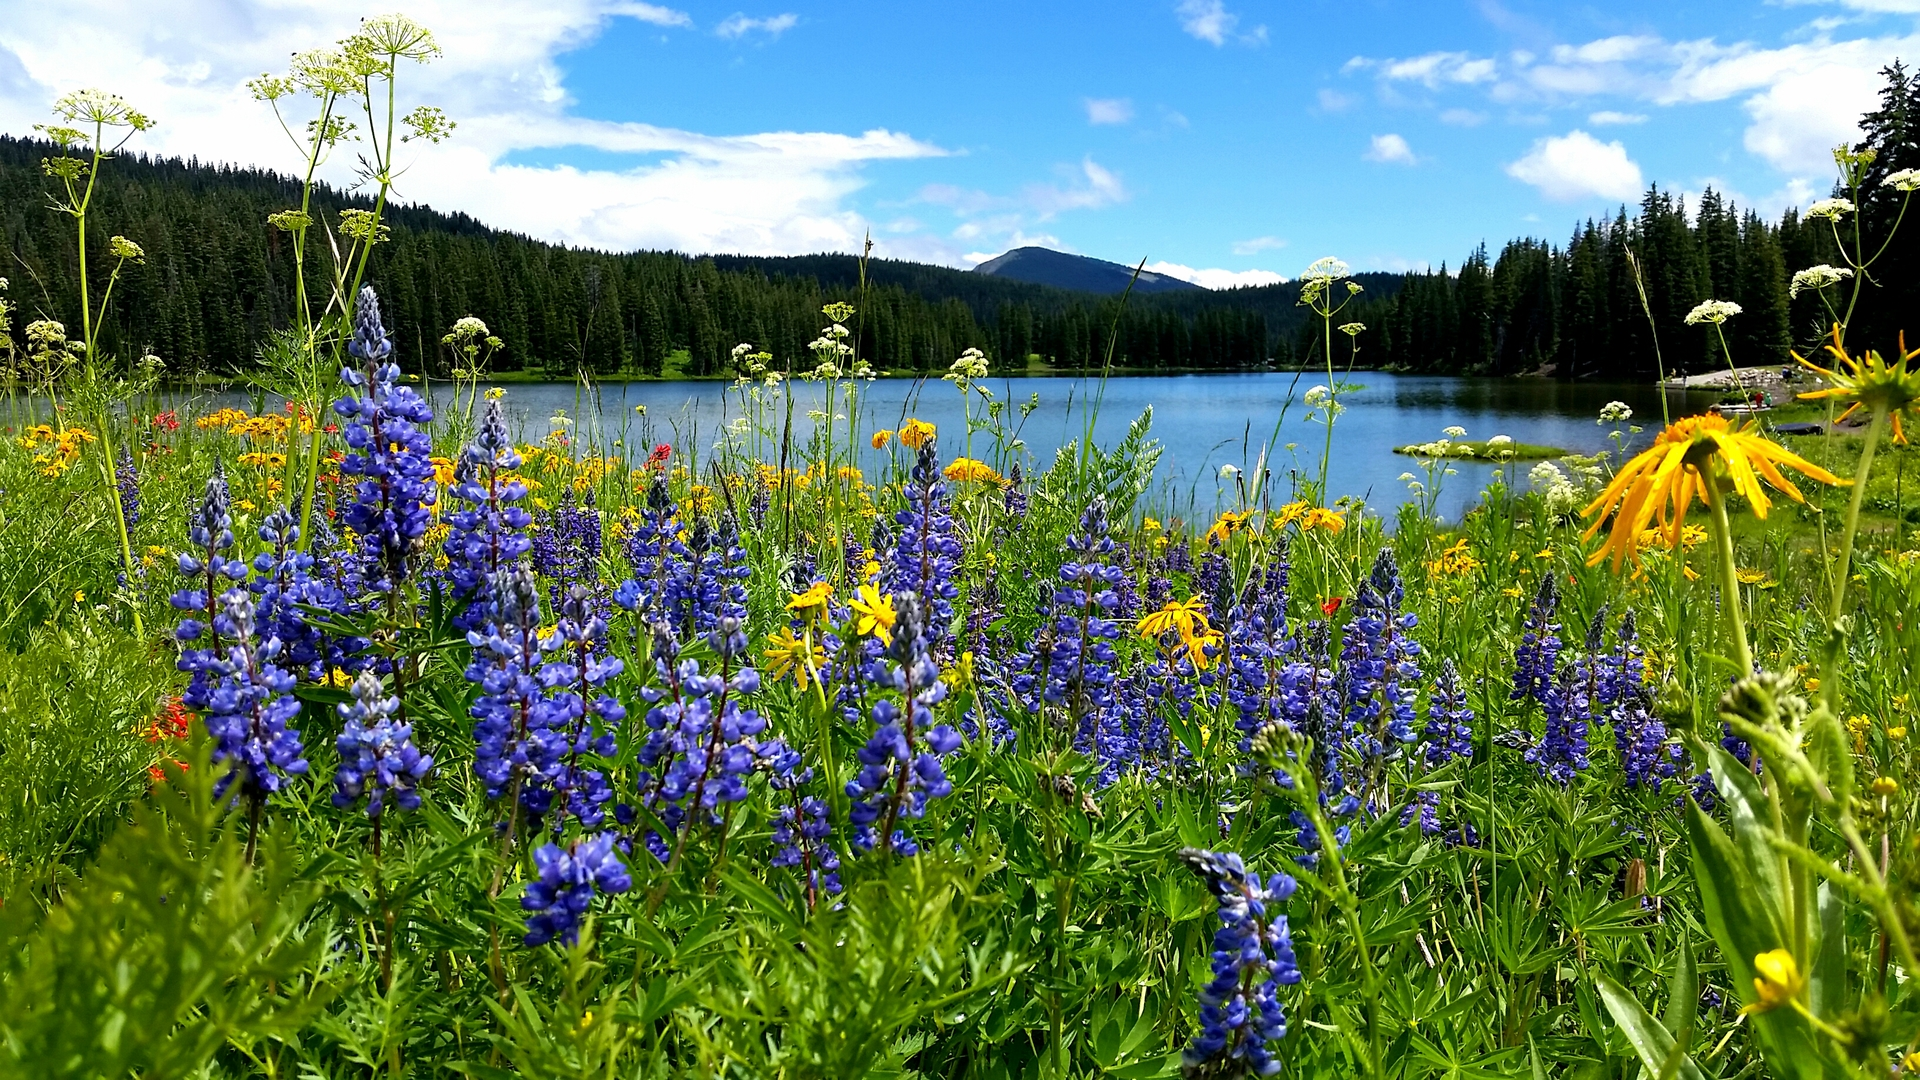 A Splendid Summer Day. At Lake Irwin in Crested Butte, Colorado.